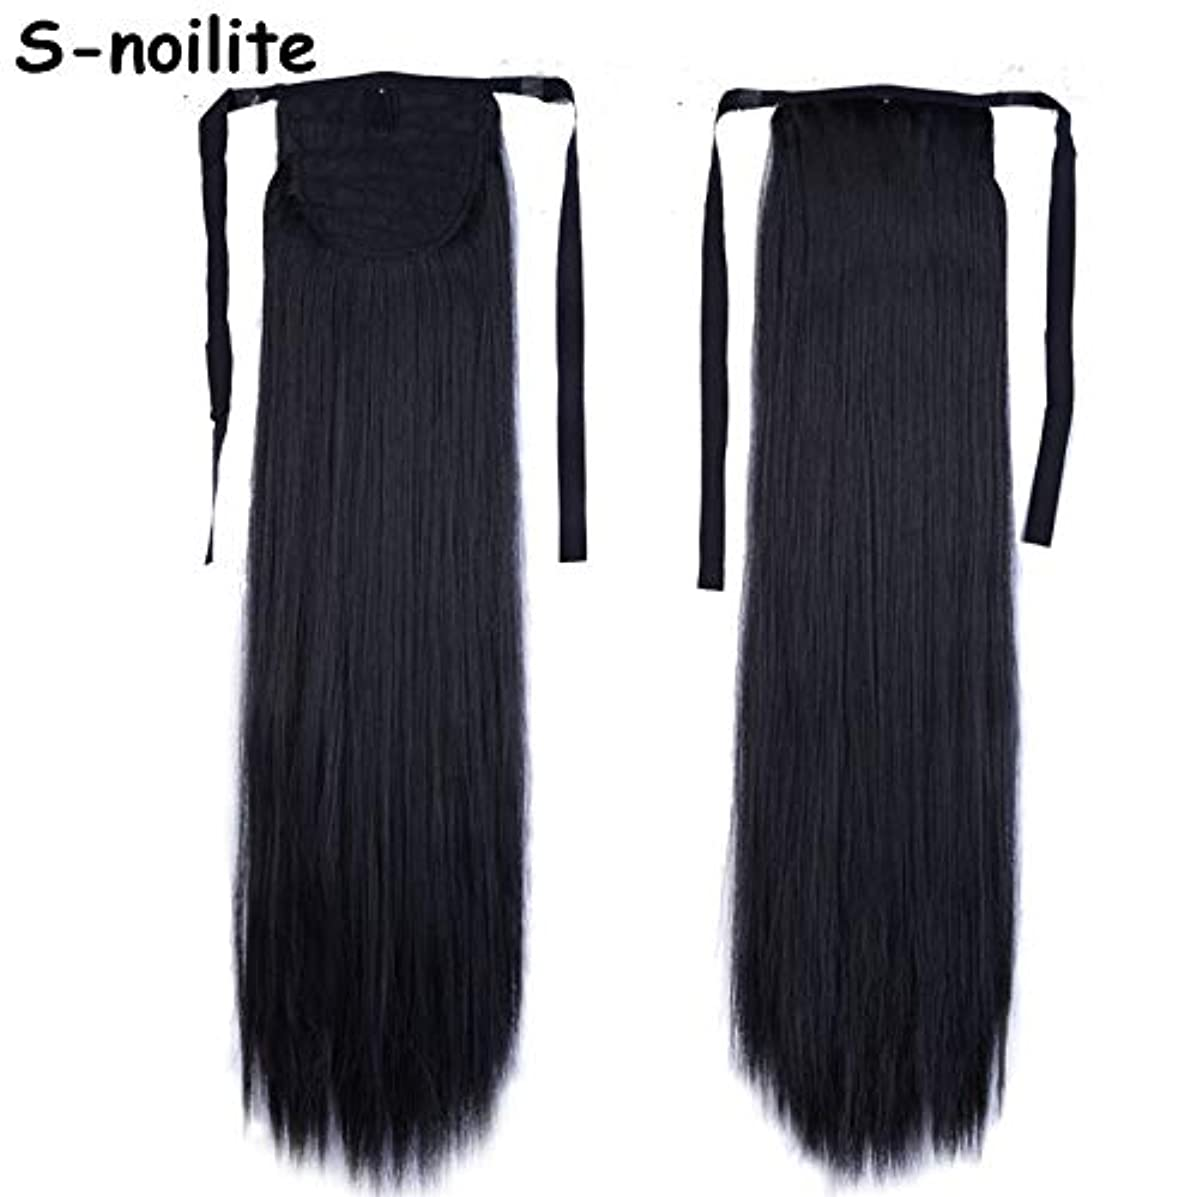 Long Women Ribbon Ponytails Long Straight Hair Pieces Synthetic Hair 125G Wrap On Hairpiece Clip In Ponytail Multicolors T696 18inches